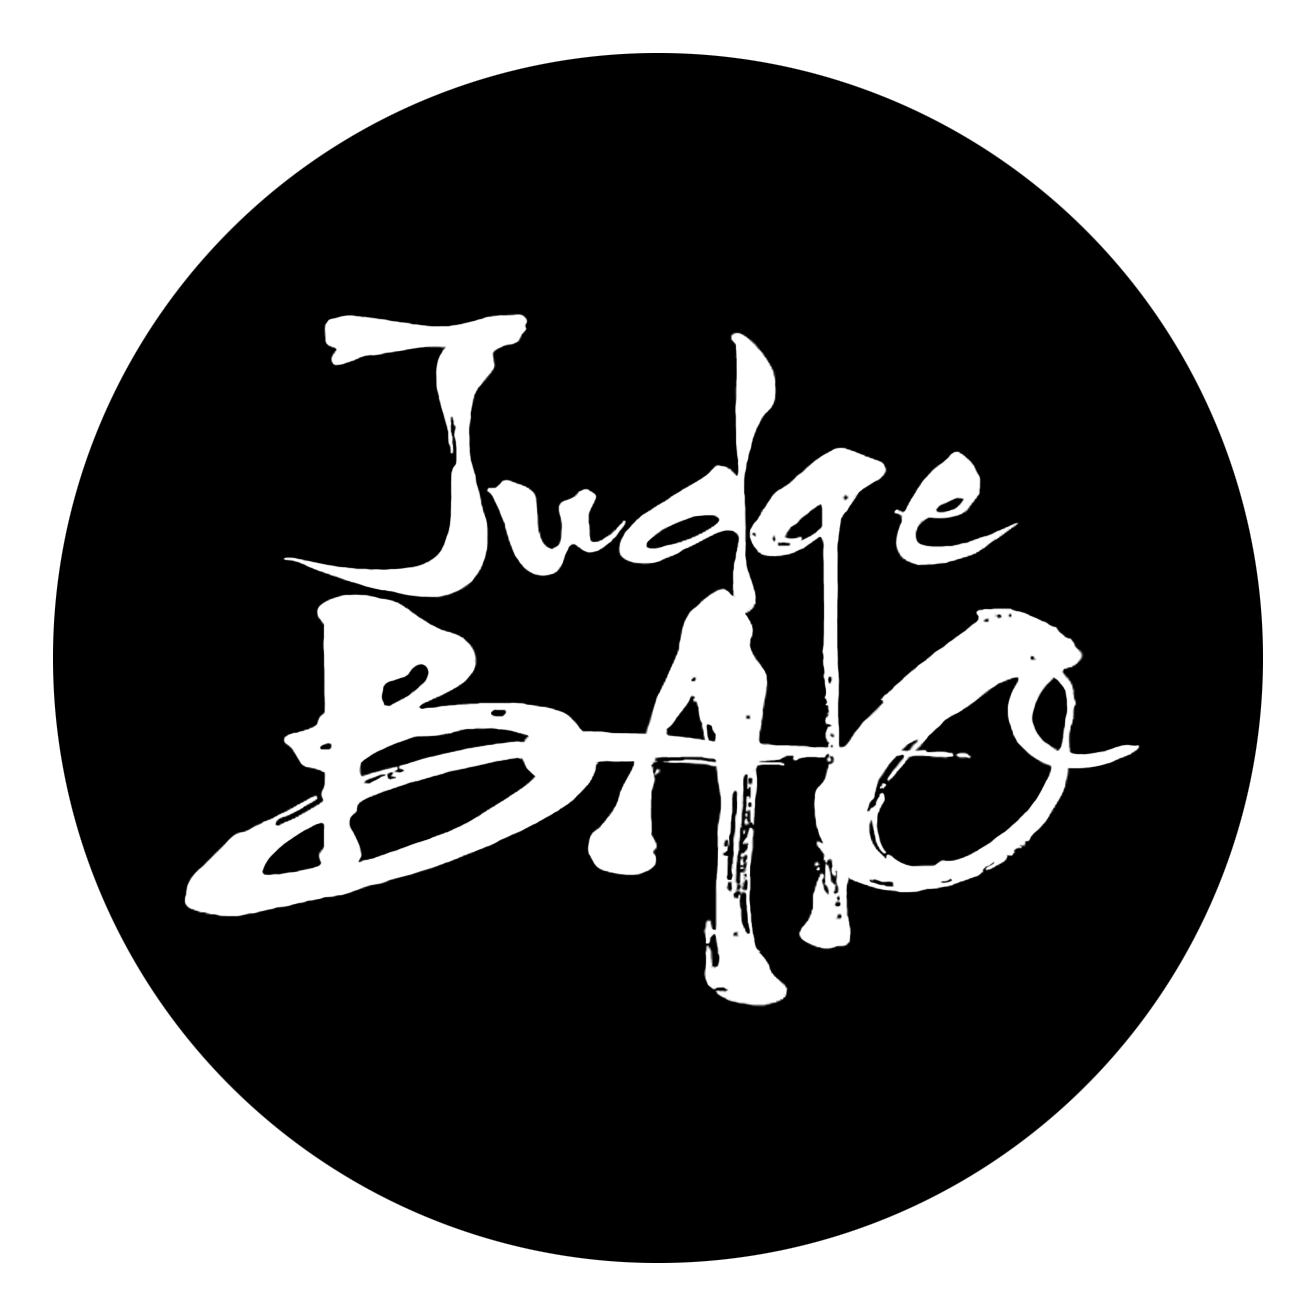 Judge Bao